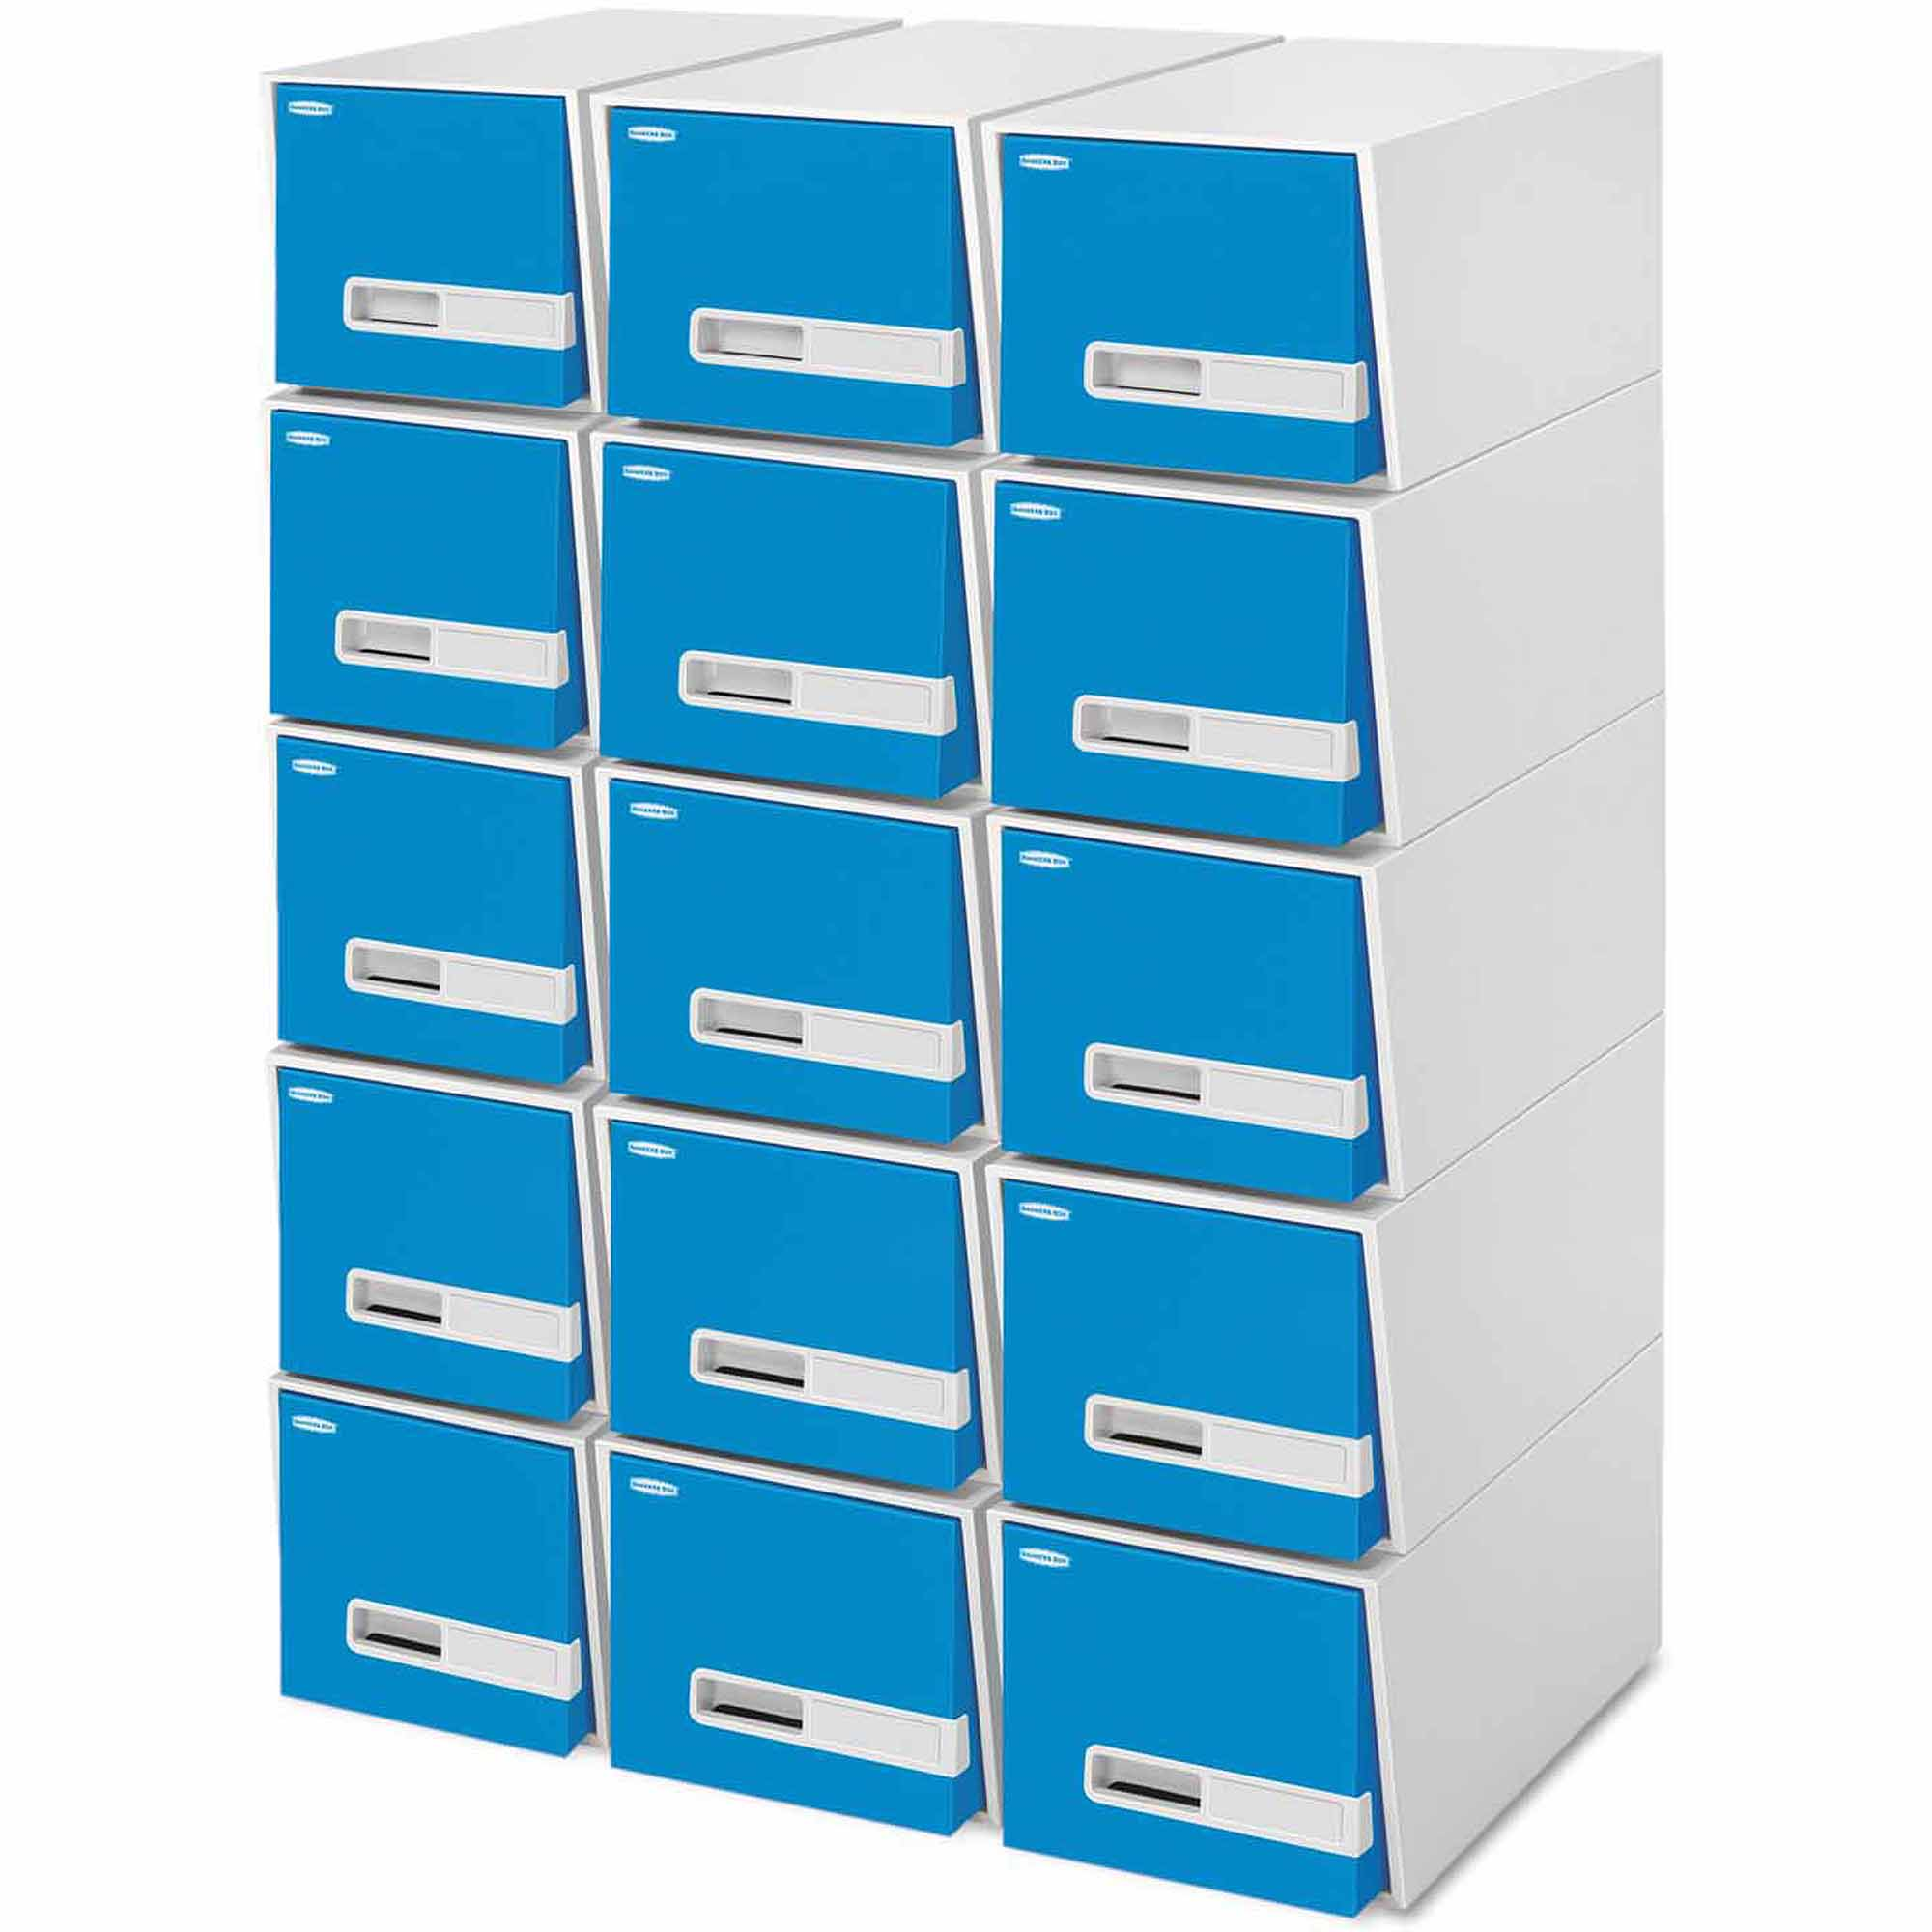 "Bankers Box Stor/Drawer Premier Extra Space Savings Storage Drawers, 24"" Letter, Blue, 5-Count"